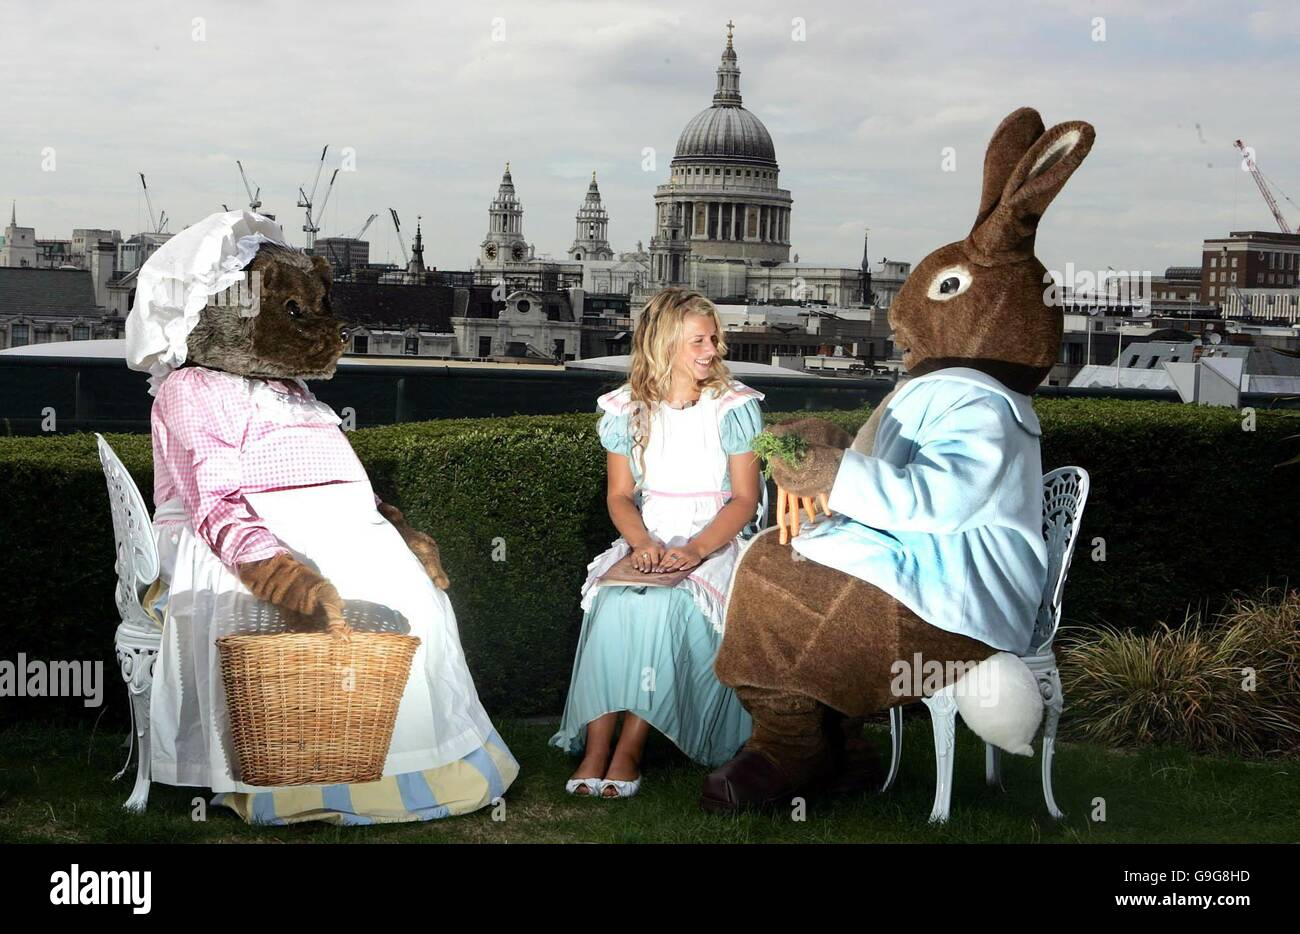 Sarah Rew (centre) as Alice joins Mrs Tiggywinkle (left) and Peter Rabbit (right) on a roof garden overlooking St - Stock Image